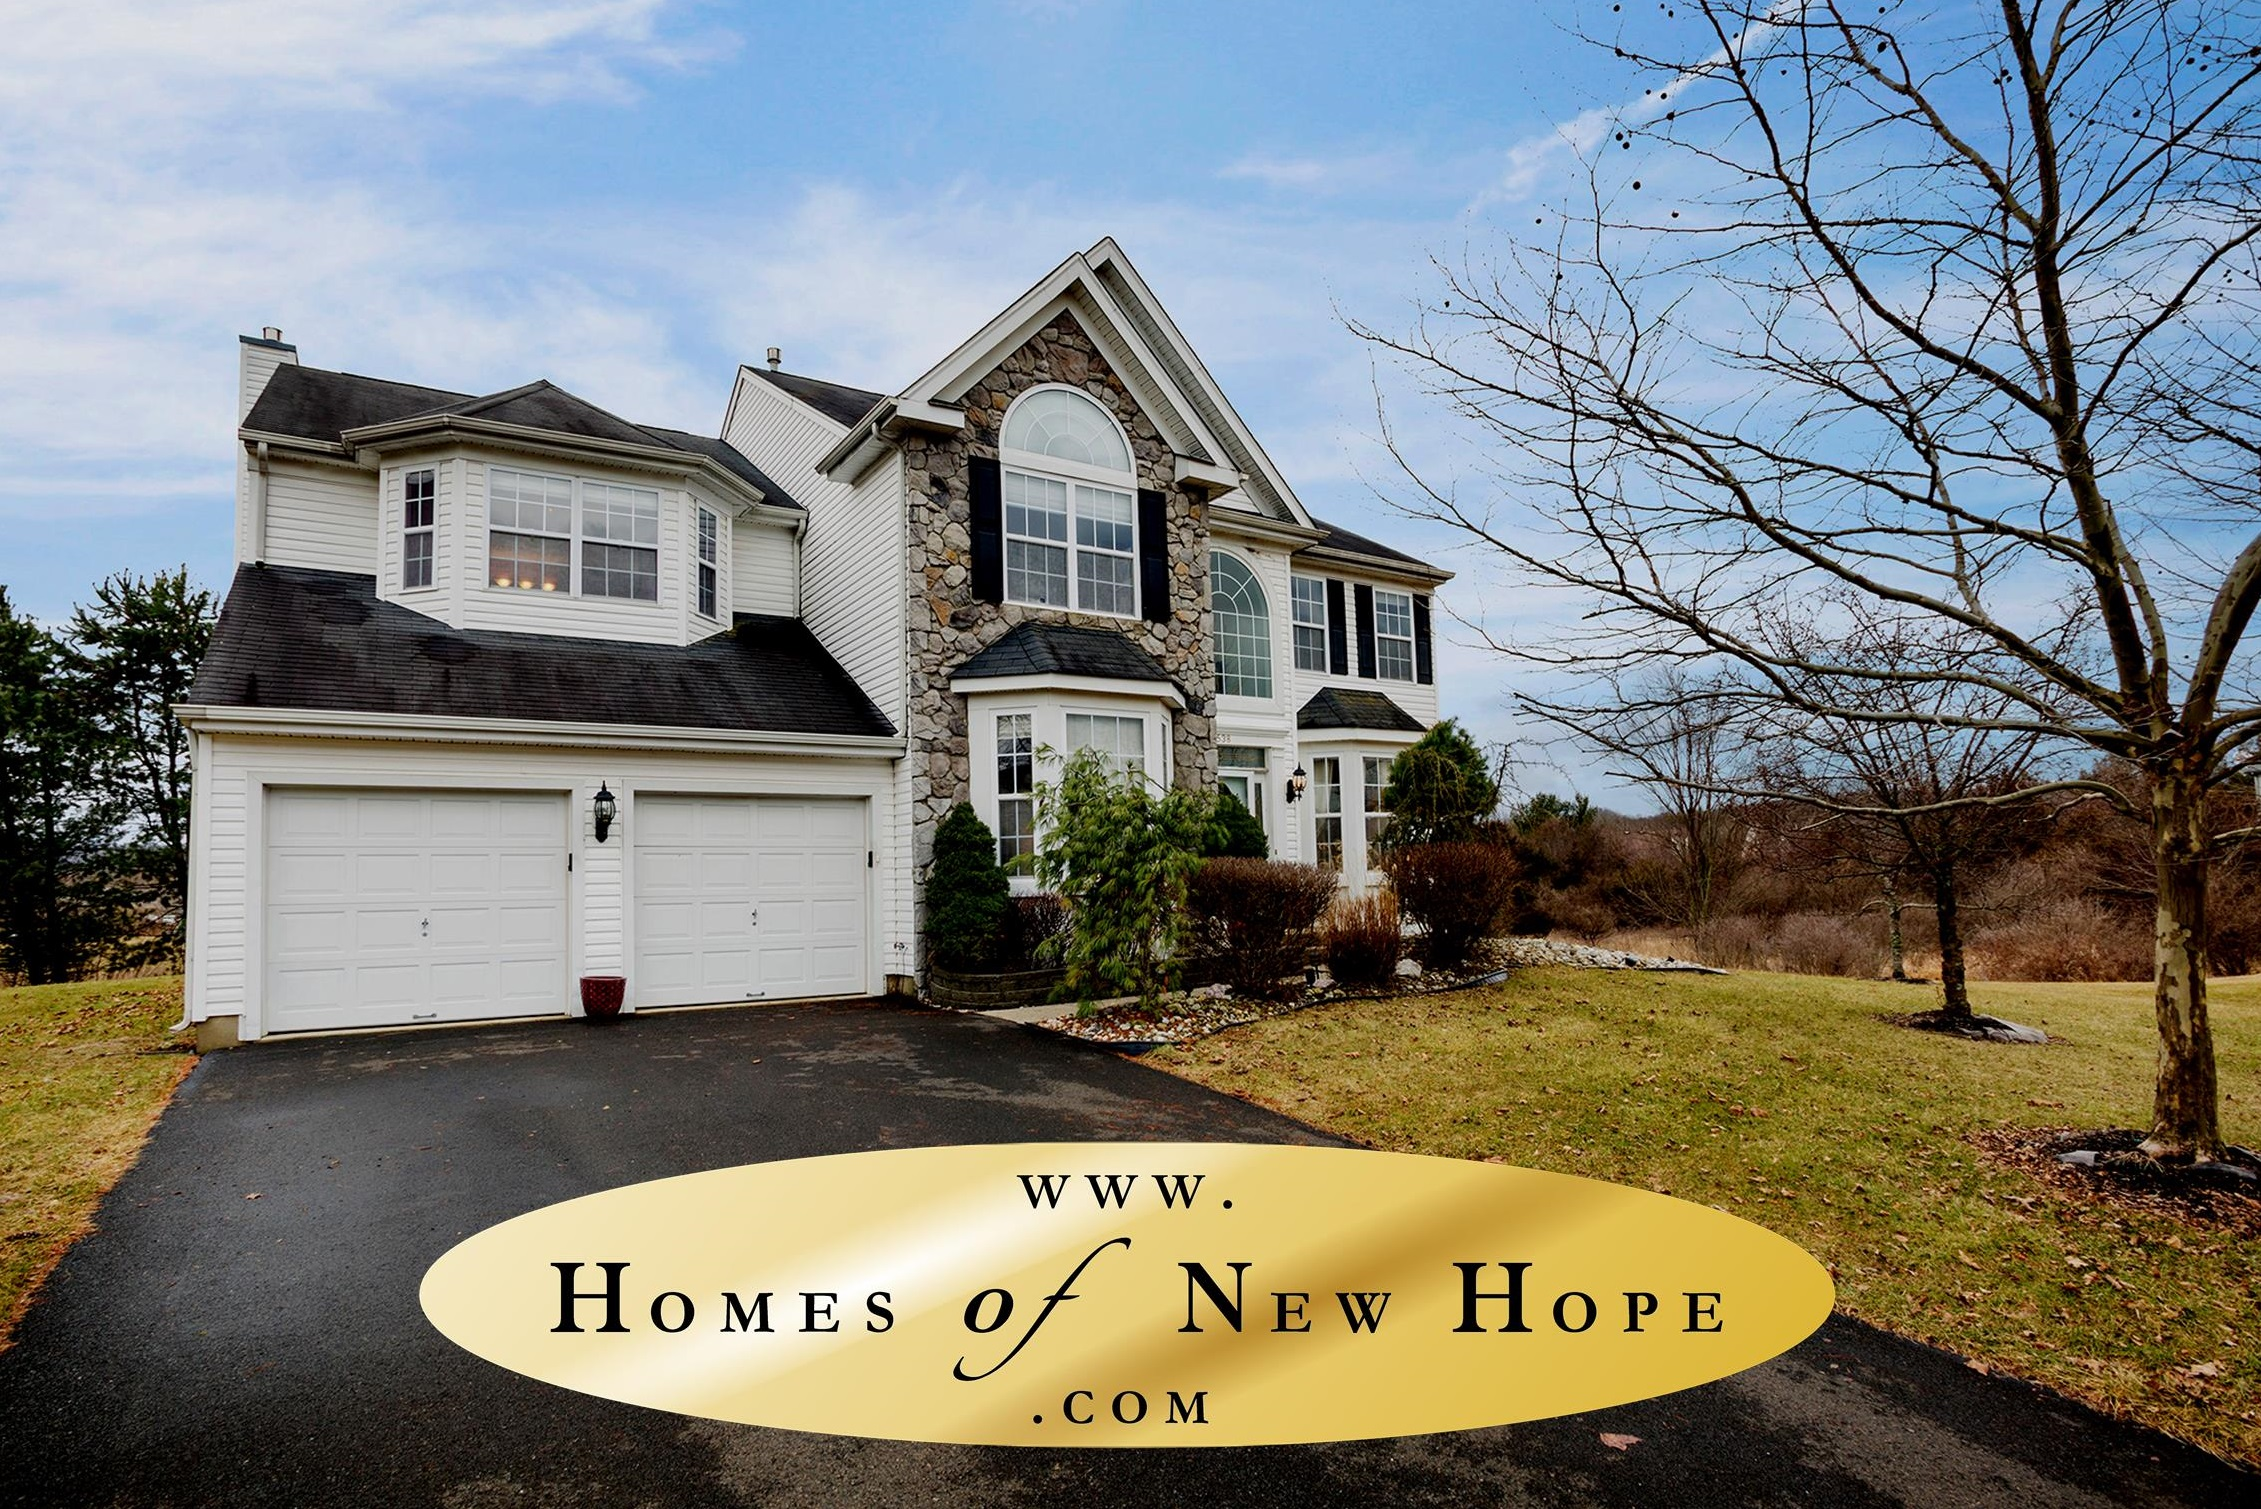 Homes of New Hope for Sale | New Hope Realtor | WEIDEL Real Estate | WEIDEL New Hope